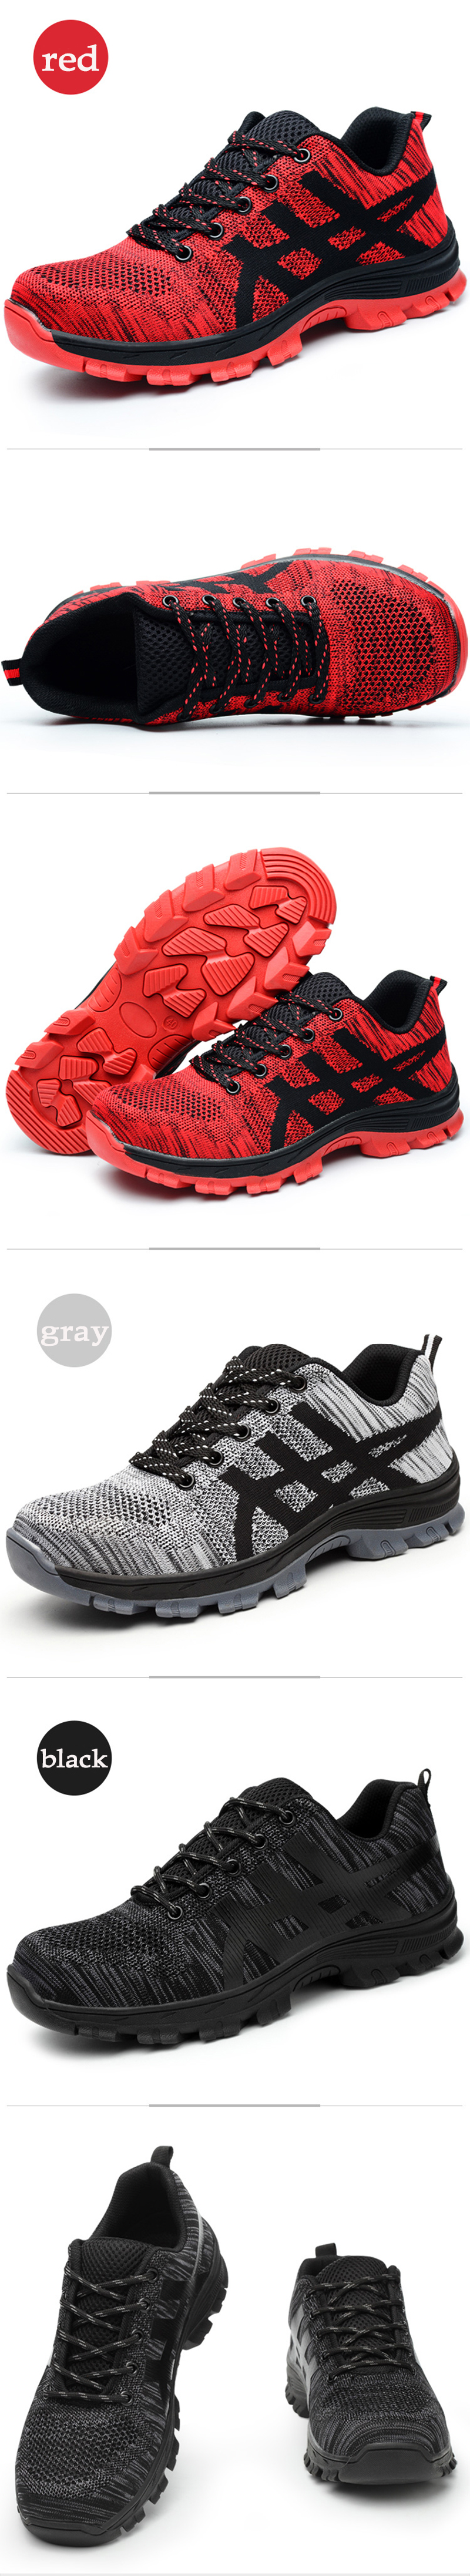 New-Exhibition-fashion-safety-shoes-mens-steel-toe-covers-working-sneakers -breathable-summer-tooling-low-boots-protect-footwear (18)